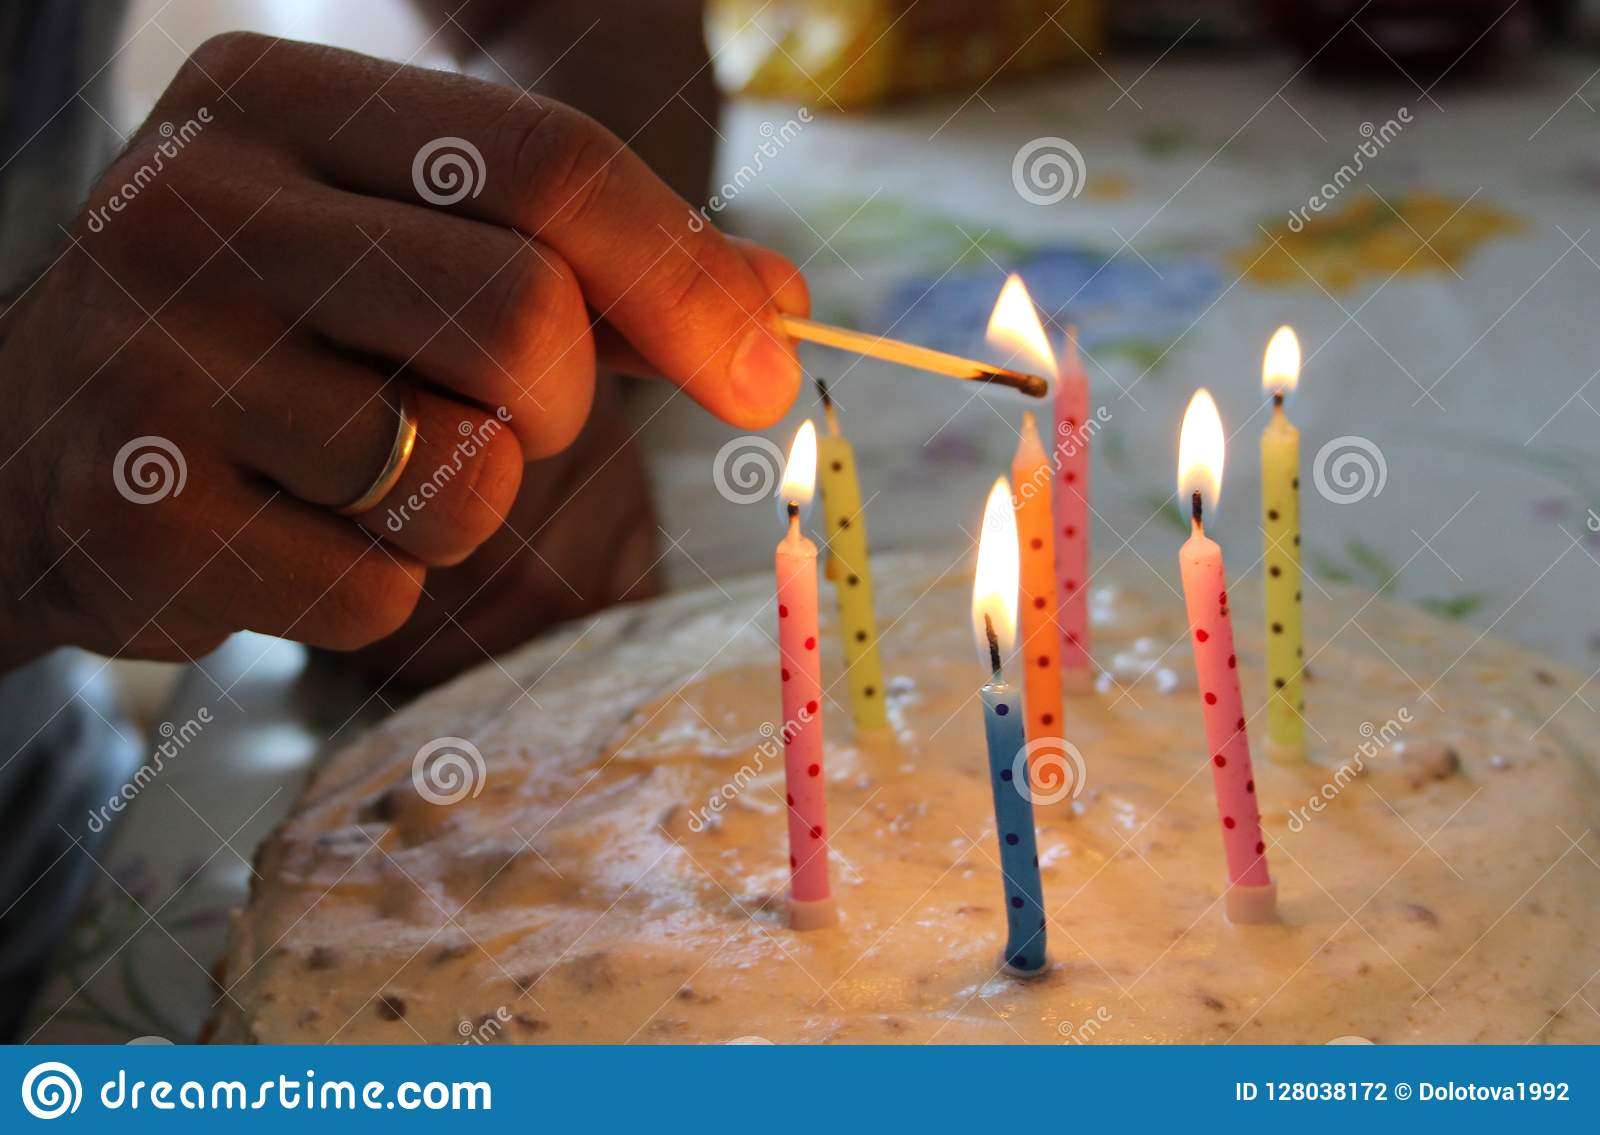 Big Birthday Cake With Burning Candles